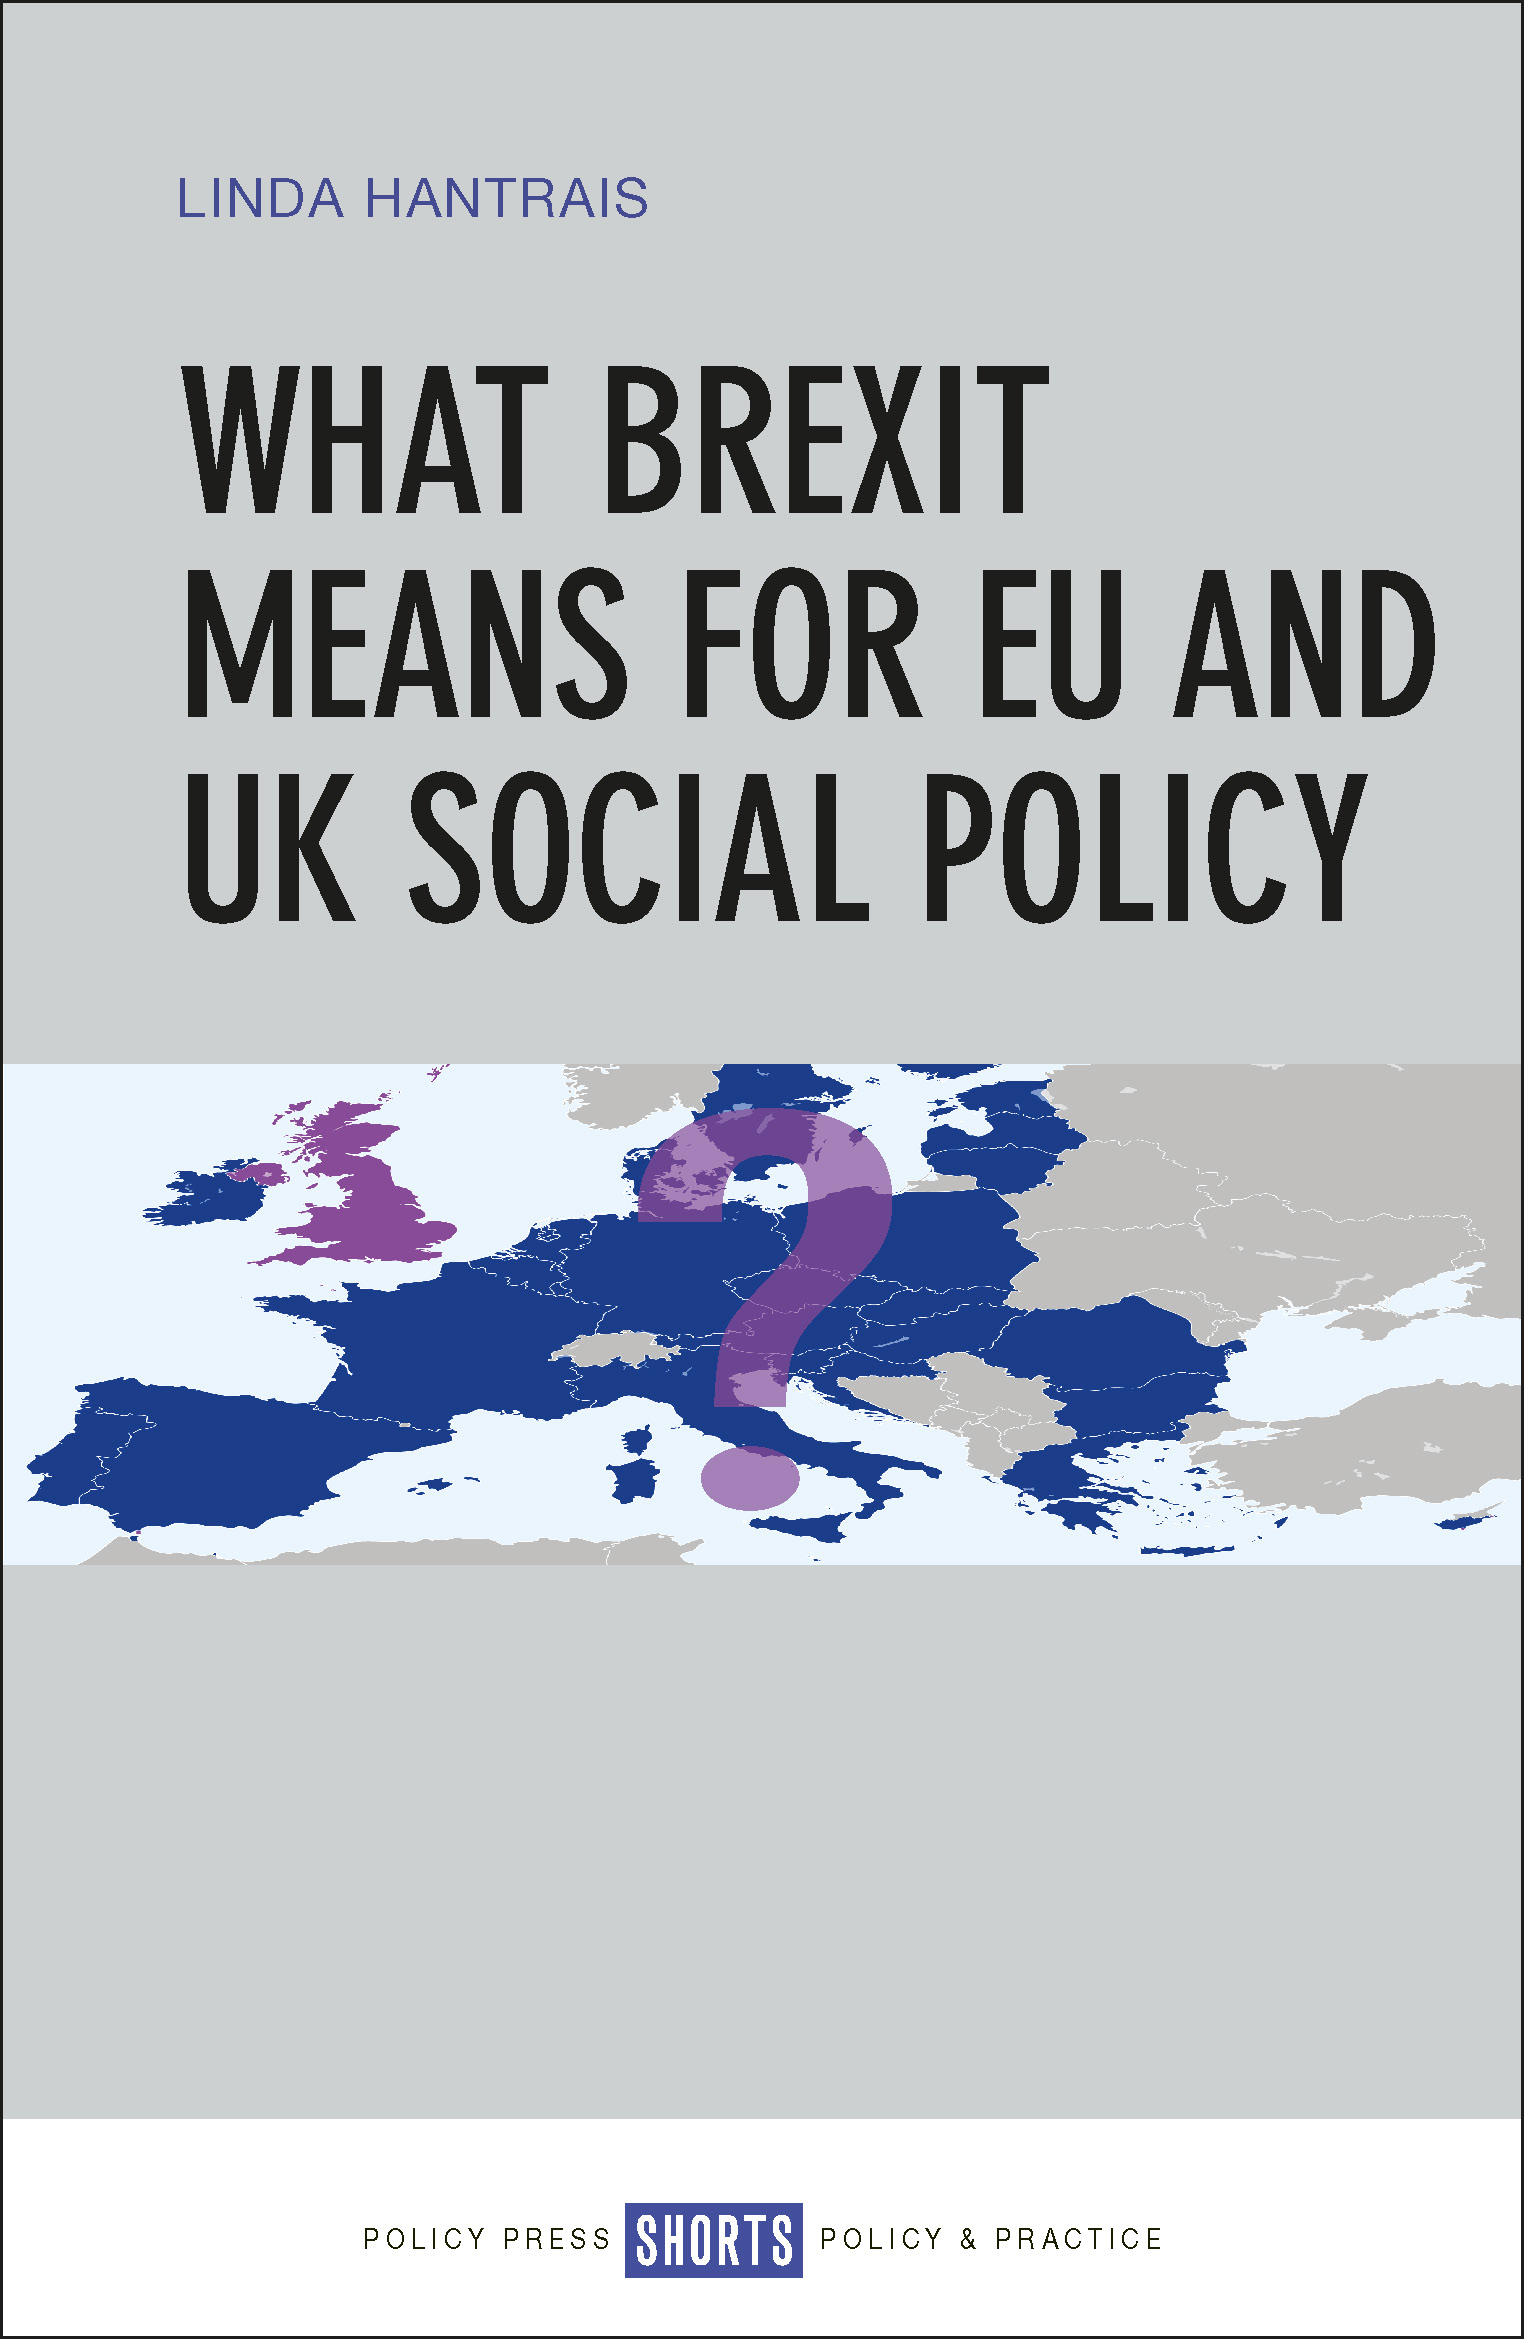 A long view on Brexit and social policy